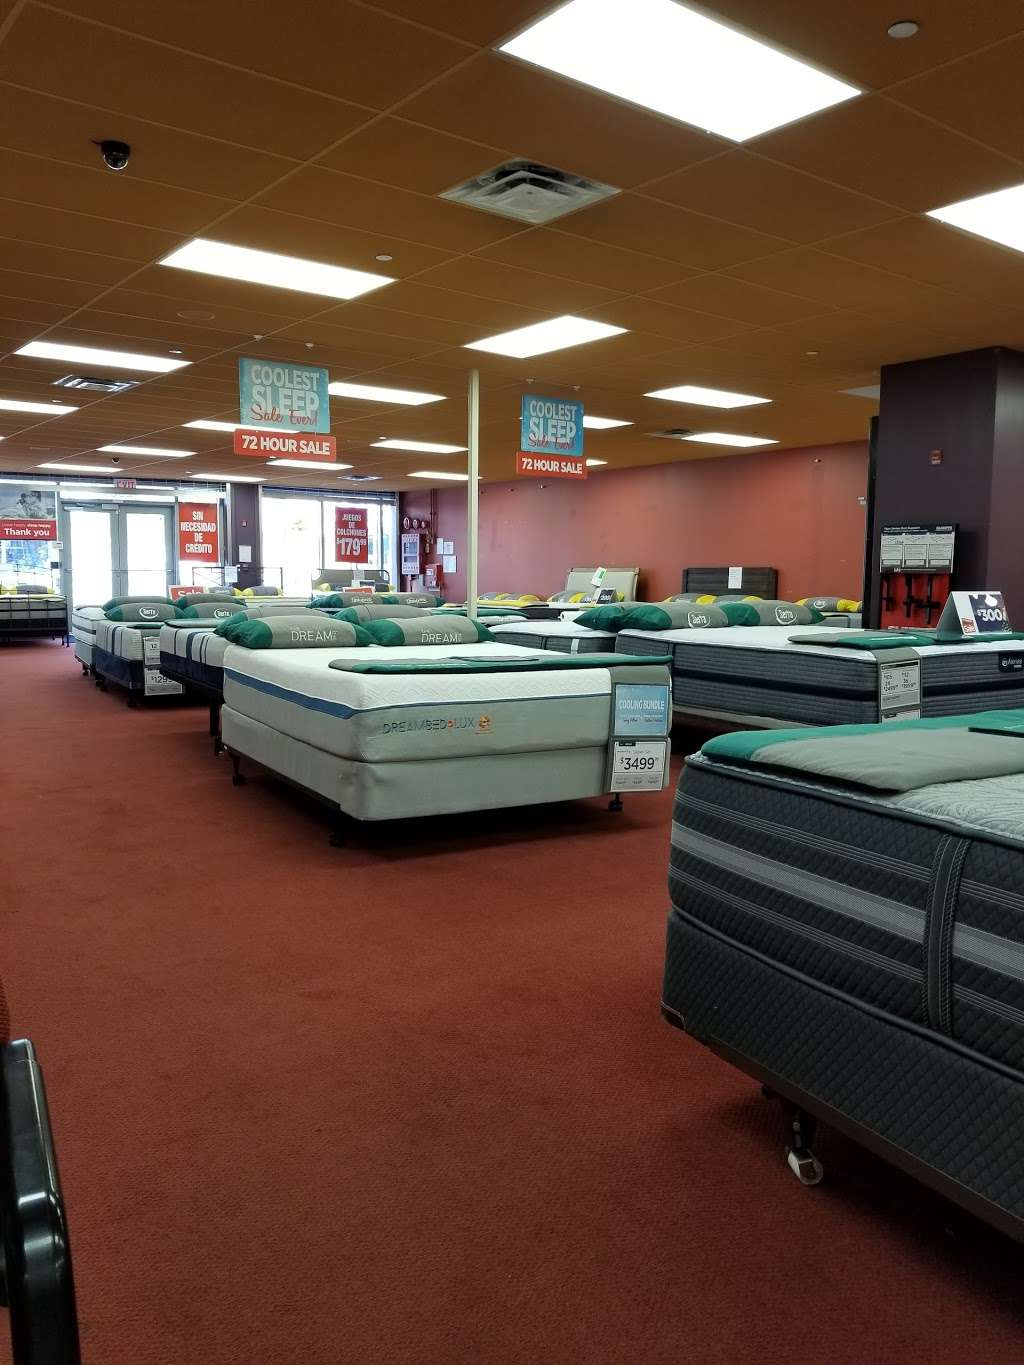 Mattress Firm Third Ave & 154th - furniture store  | Photo 2 of 4 | Address: 2984 Third Ave, Bronx, NY 10455, USA | Phone: (718) 402-0585